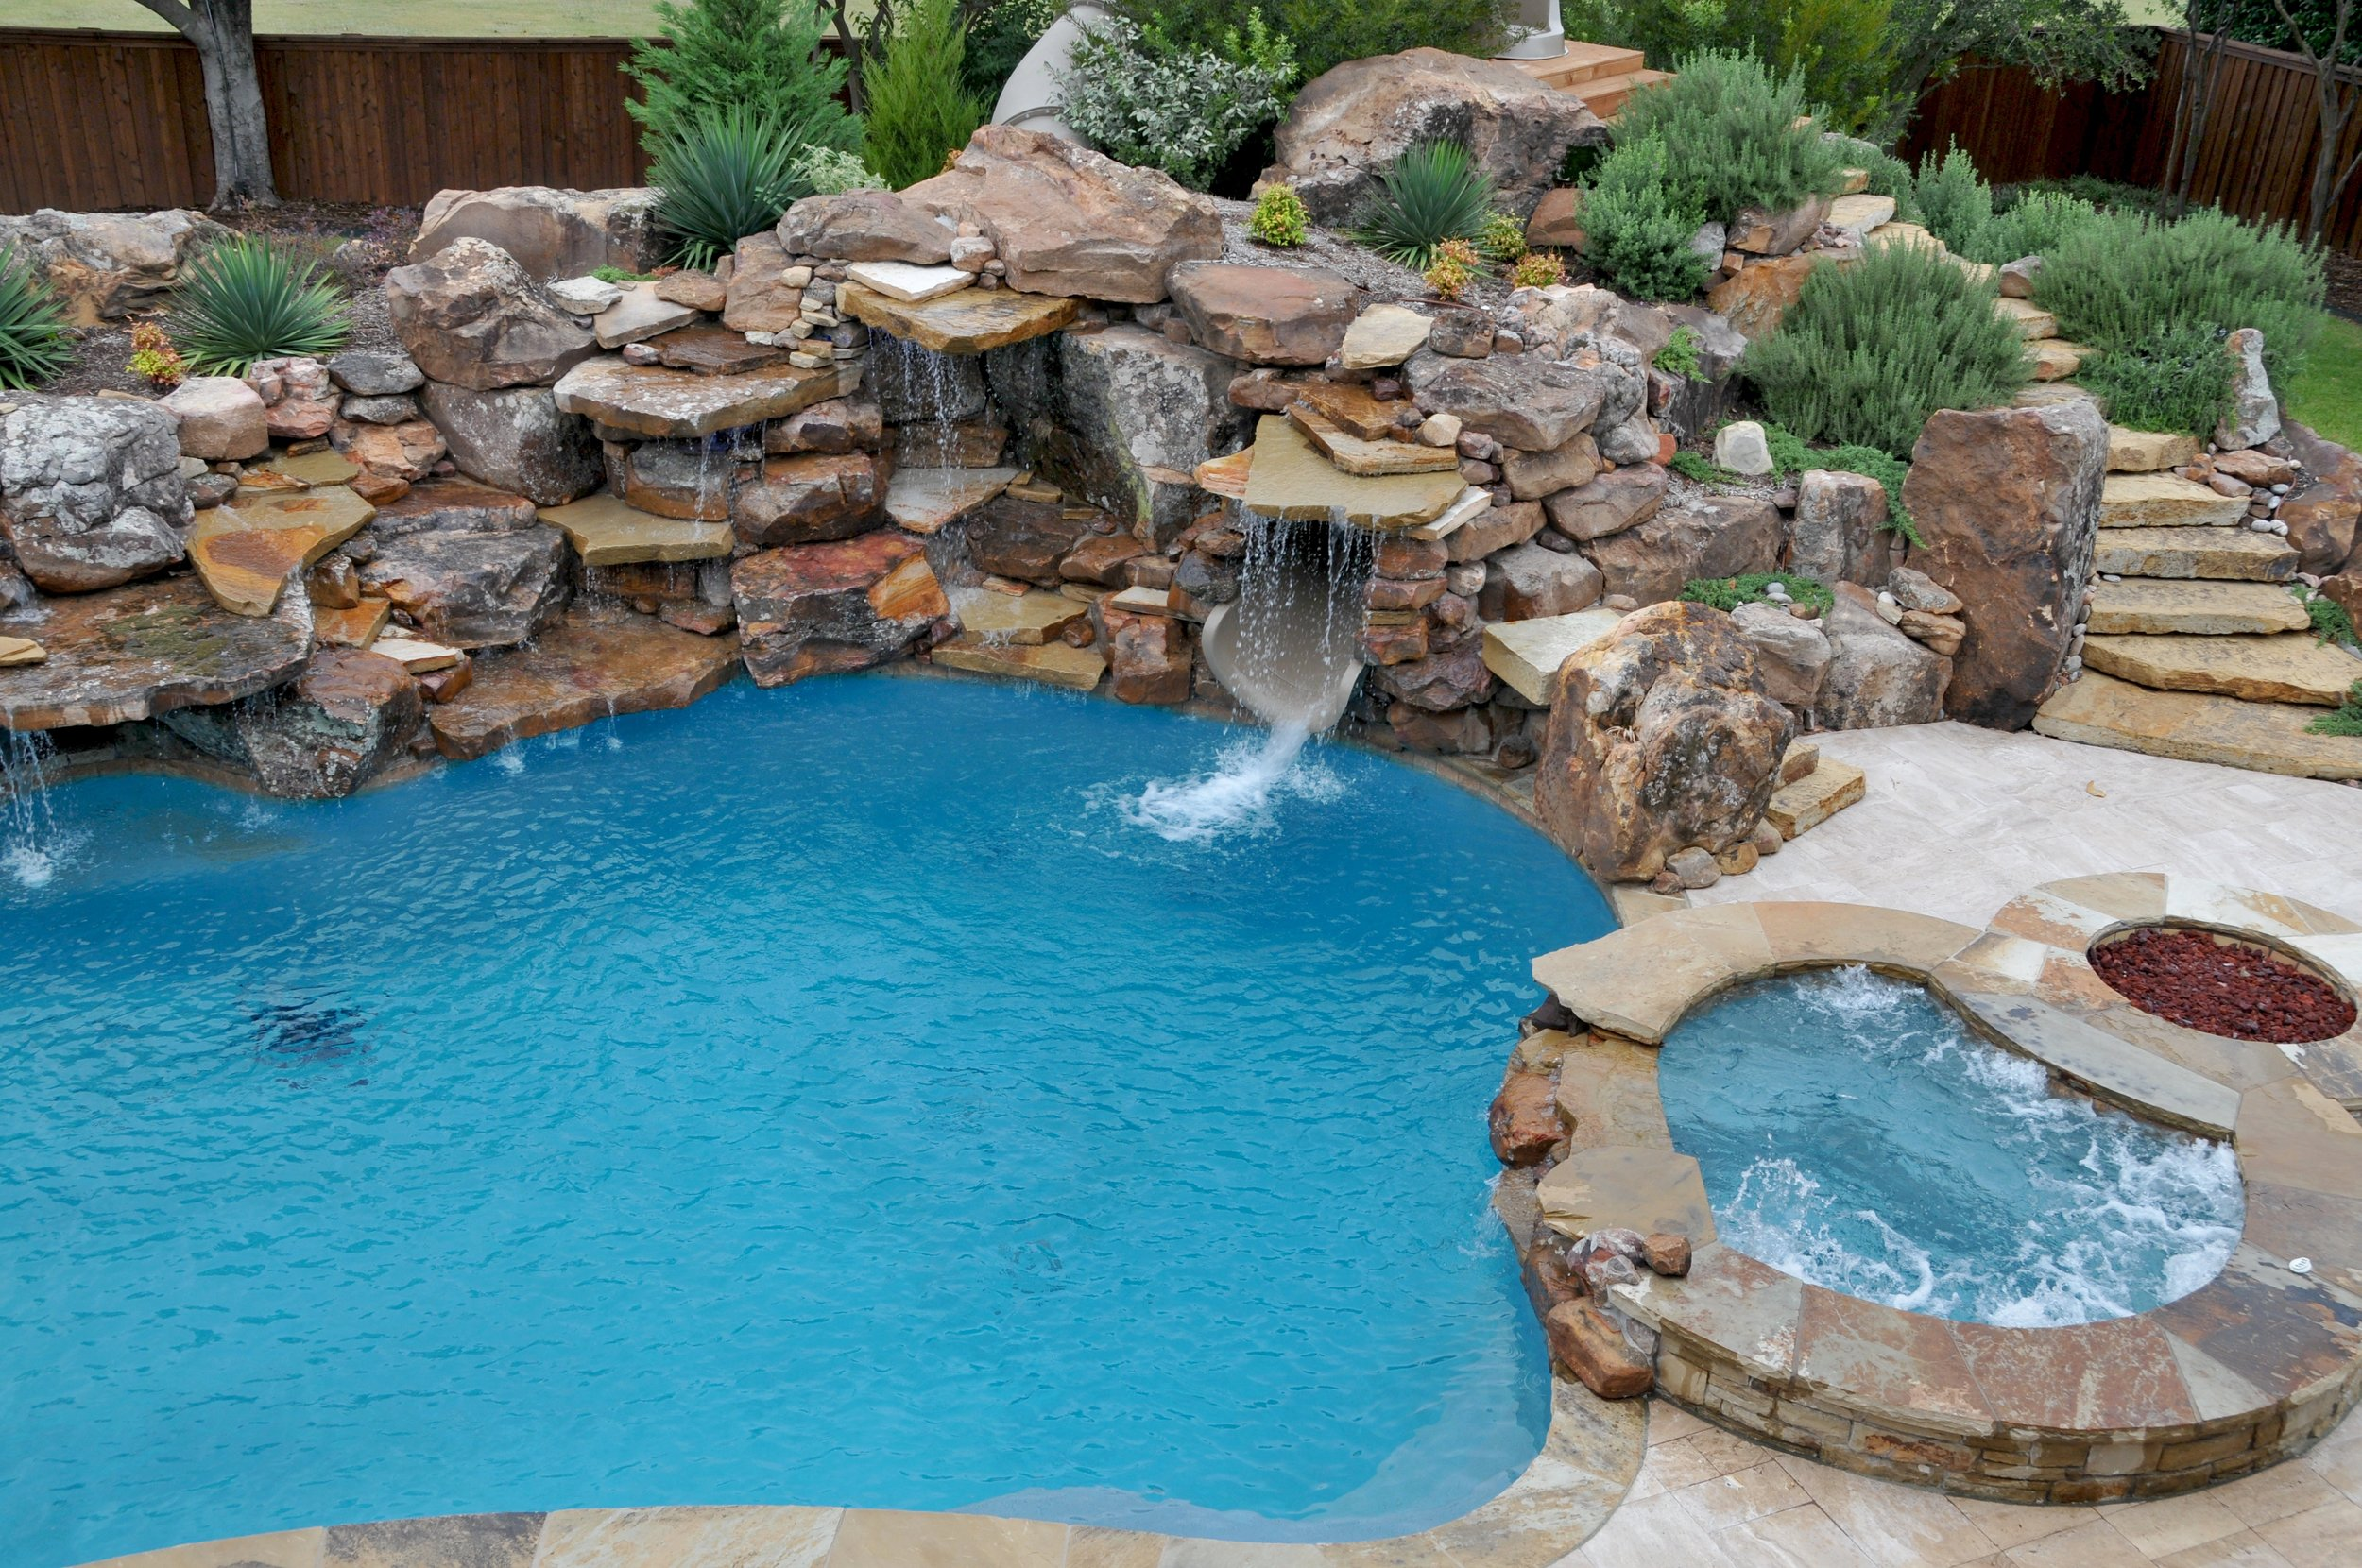 DSC_2216+Adjusted